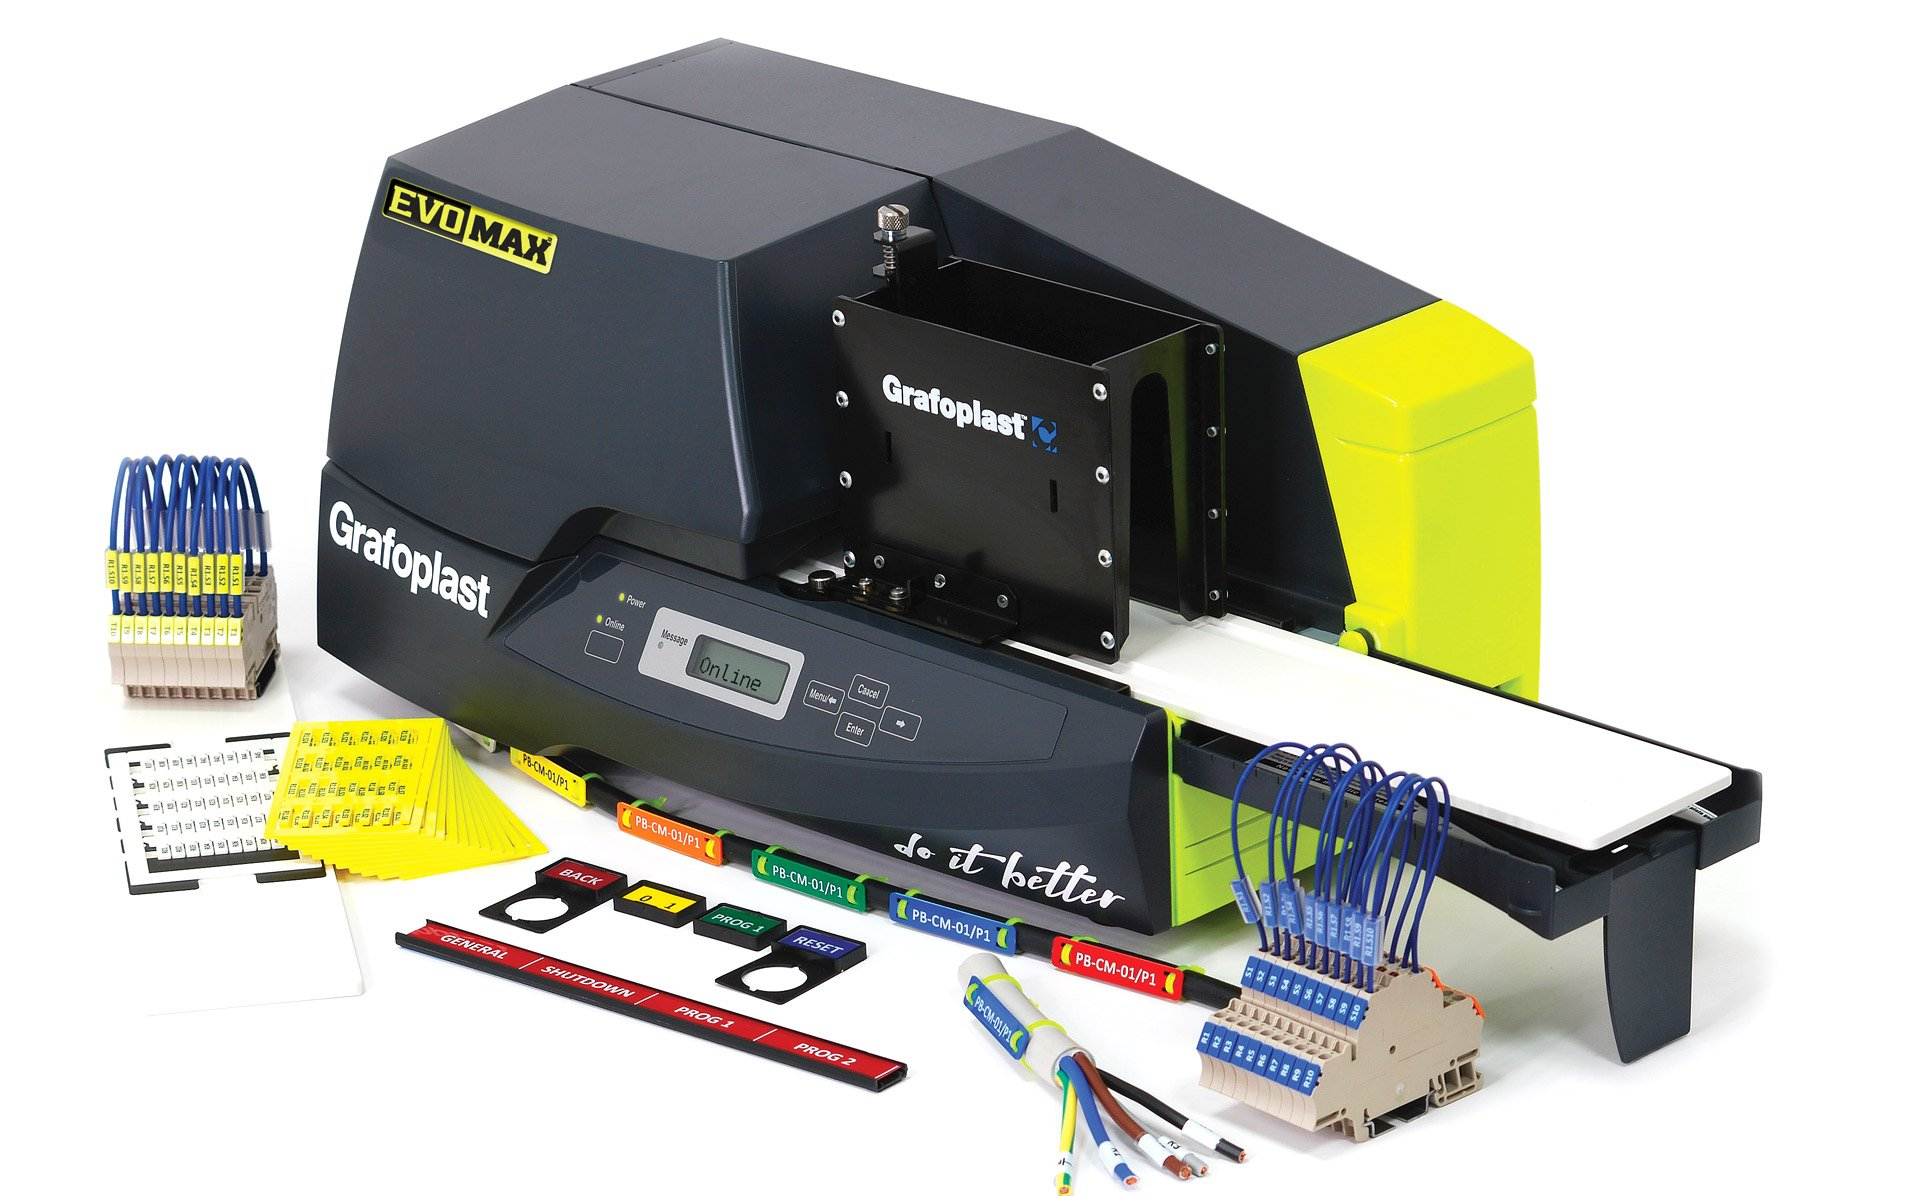 Grafoplast EVOMAX Thermal printer